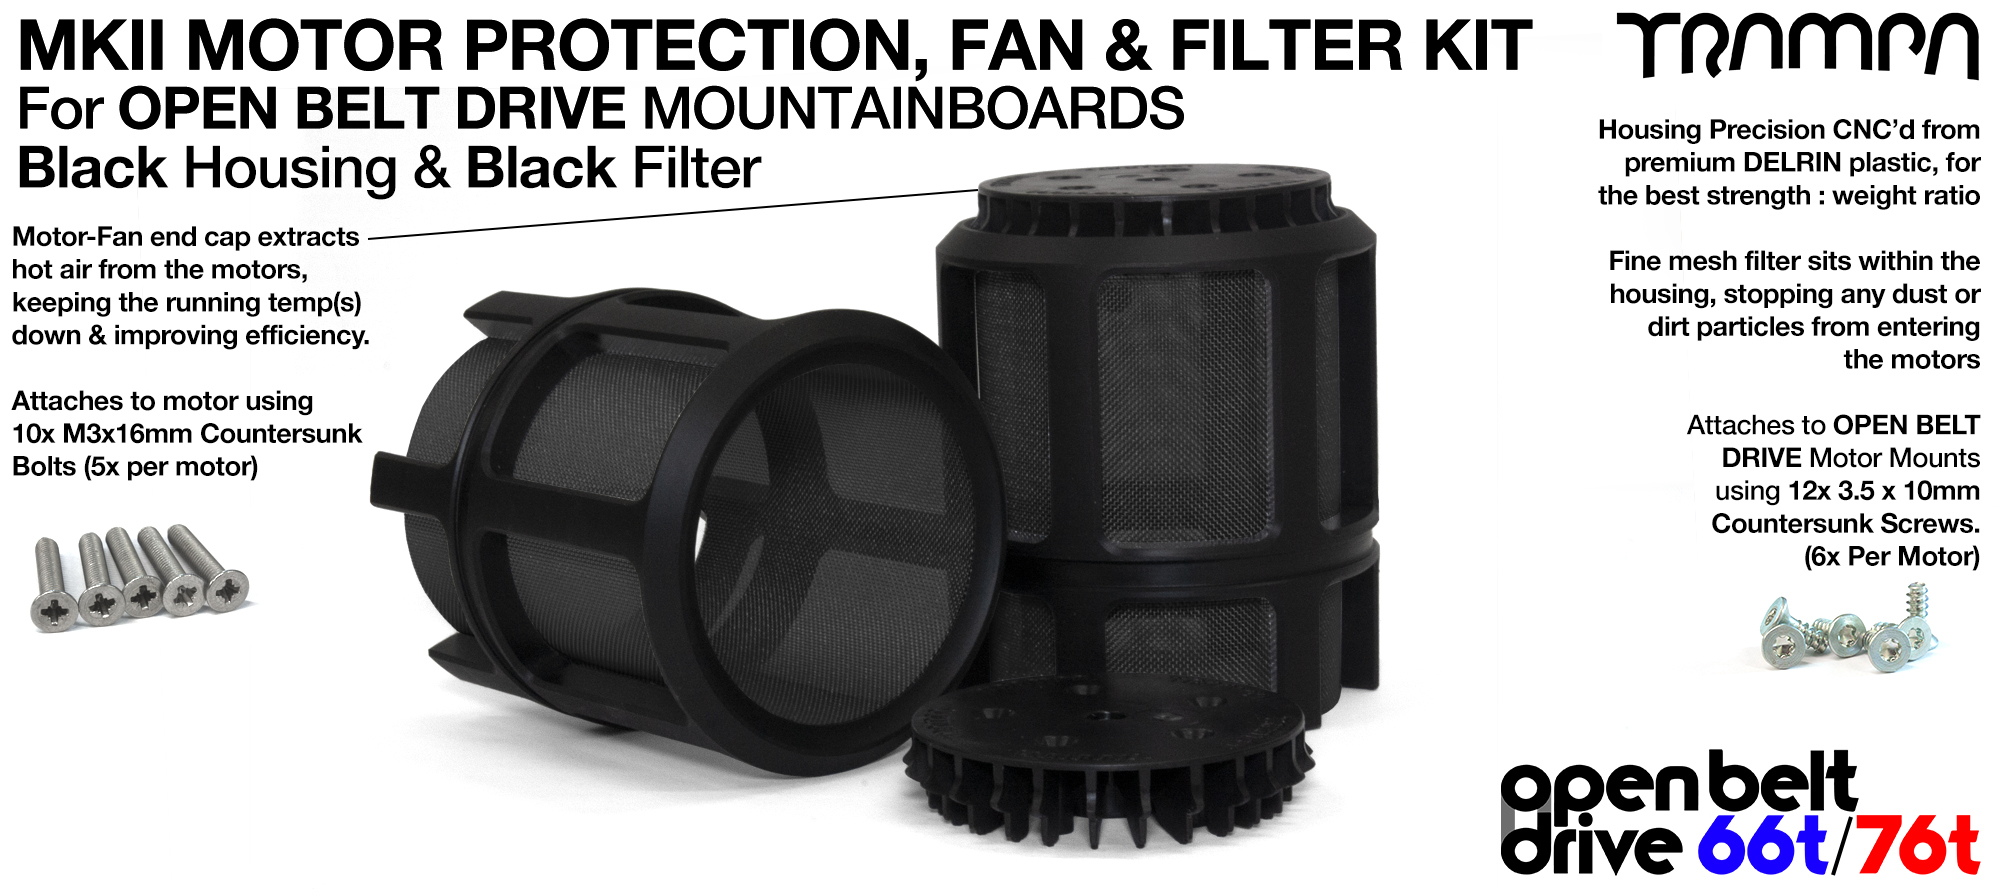 Motor Protection Cage with Fan - BLACK filter